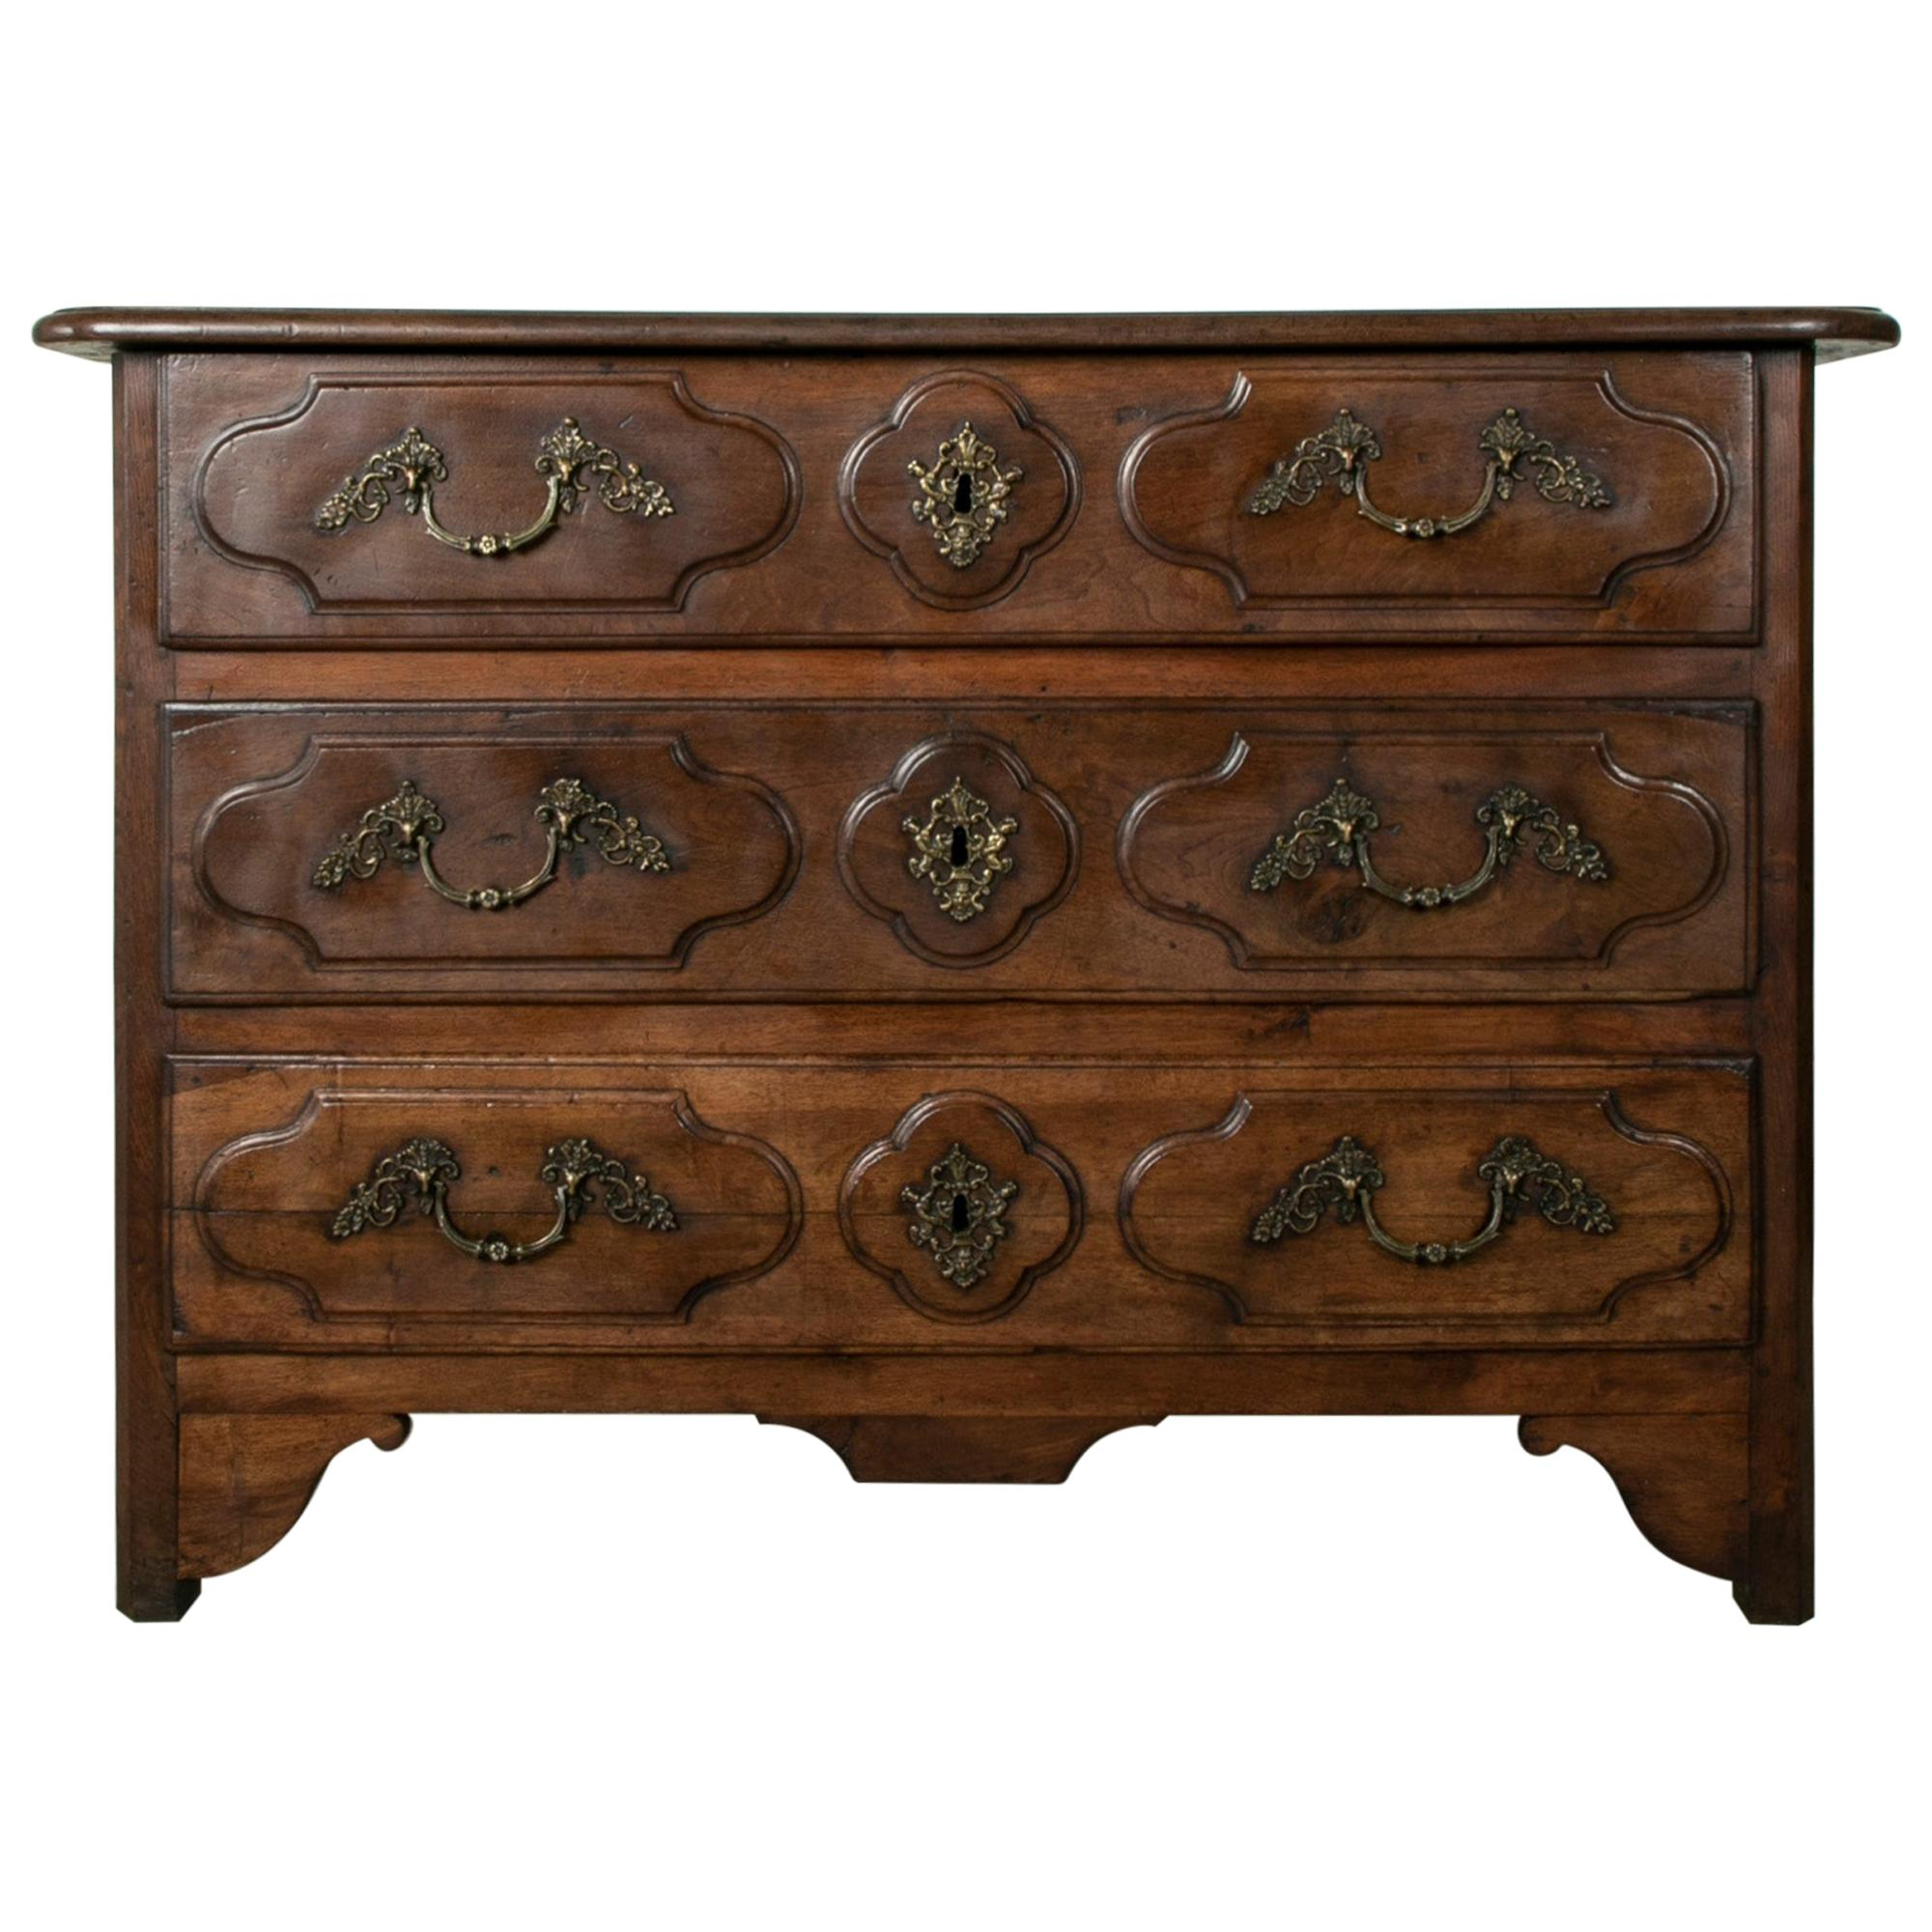 Late 18th Century French Louis XIV Style Hand Carved Walnut Commode or Chest